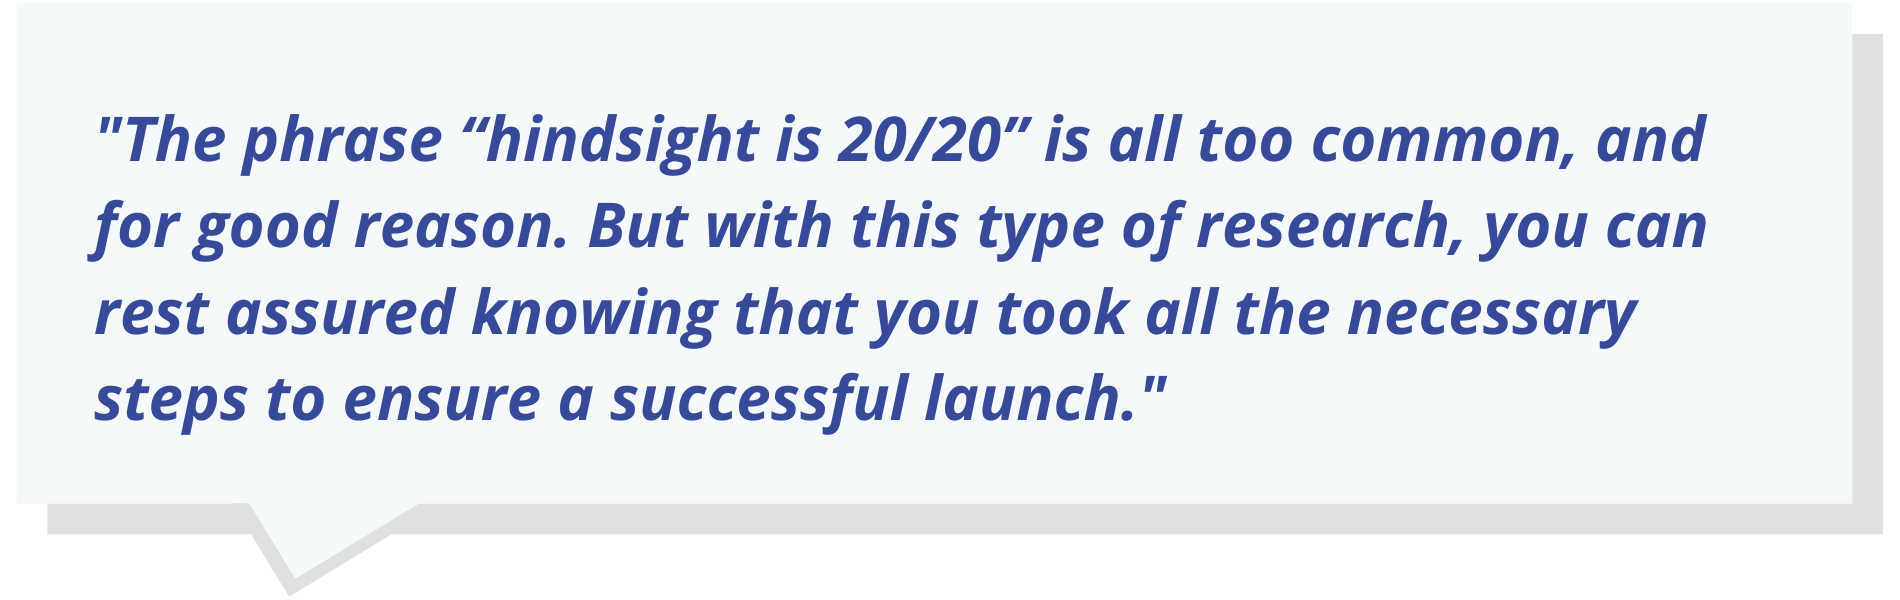 "Quote text: The phrase ""hindsight is 20/20"" is all too common, and for good reason. But with this type of research, you can rest assured knowing that you took all the necessary steps to ensure a successful launch."